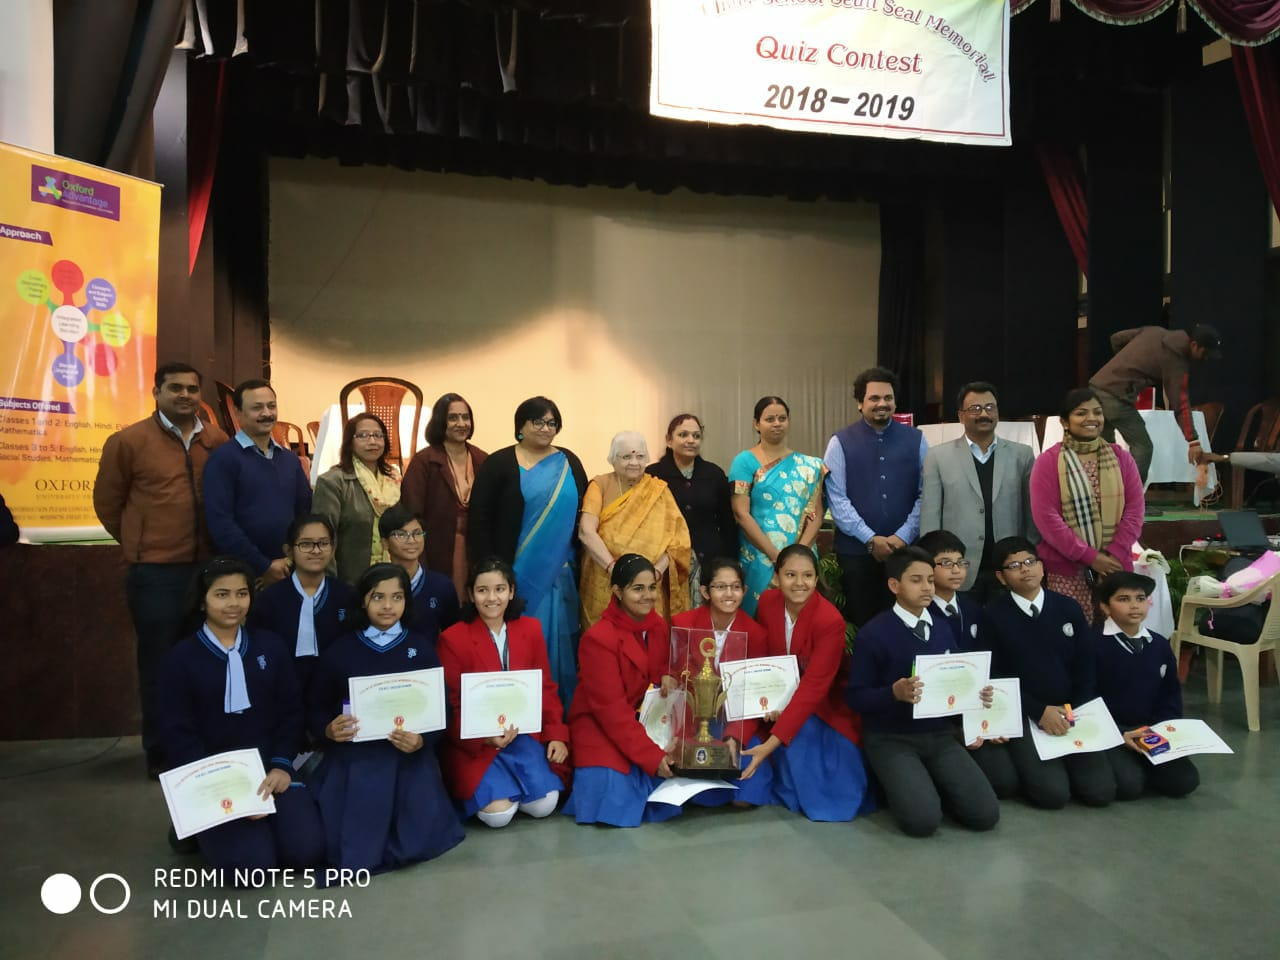 Seuli Seal Inter School Quiz